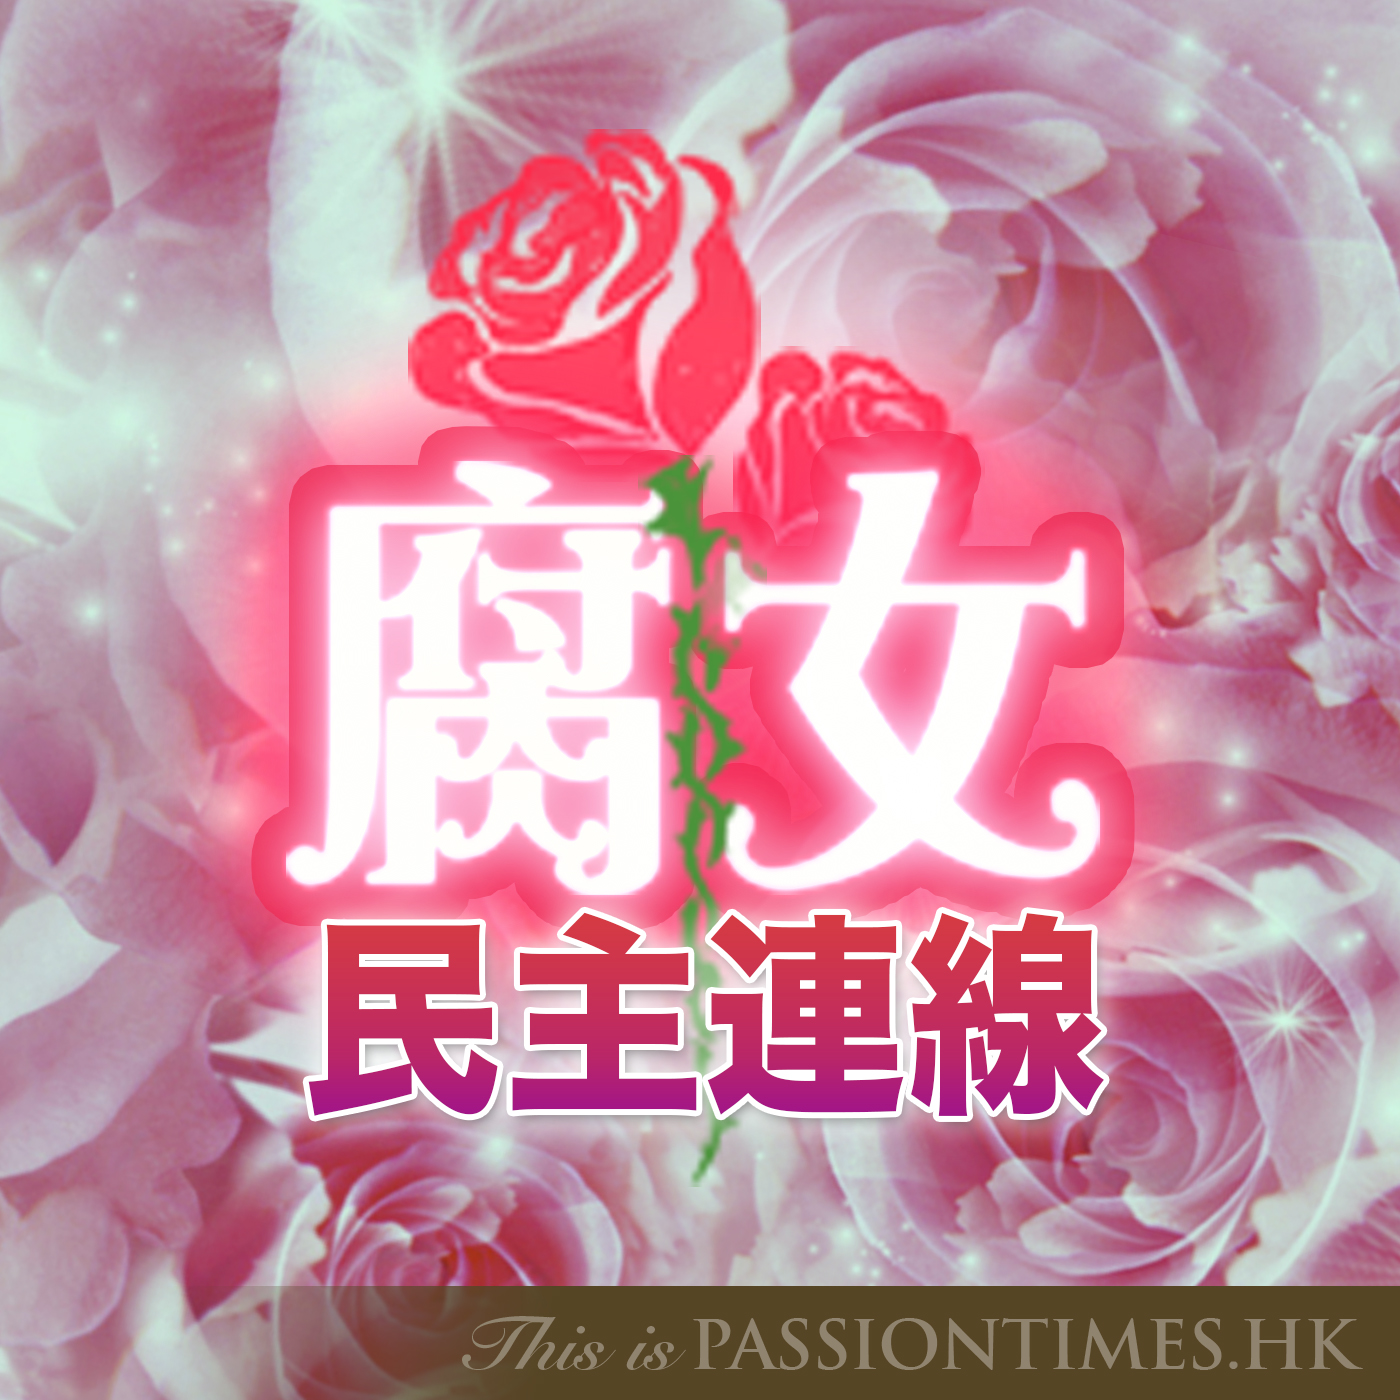 腐女民主連線 - PassionTimes Podcast (HD Video)